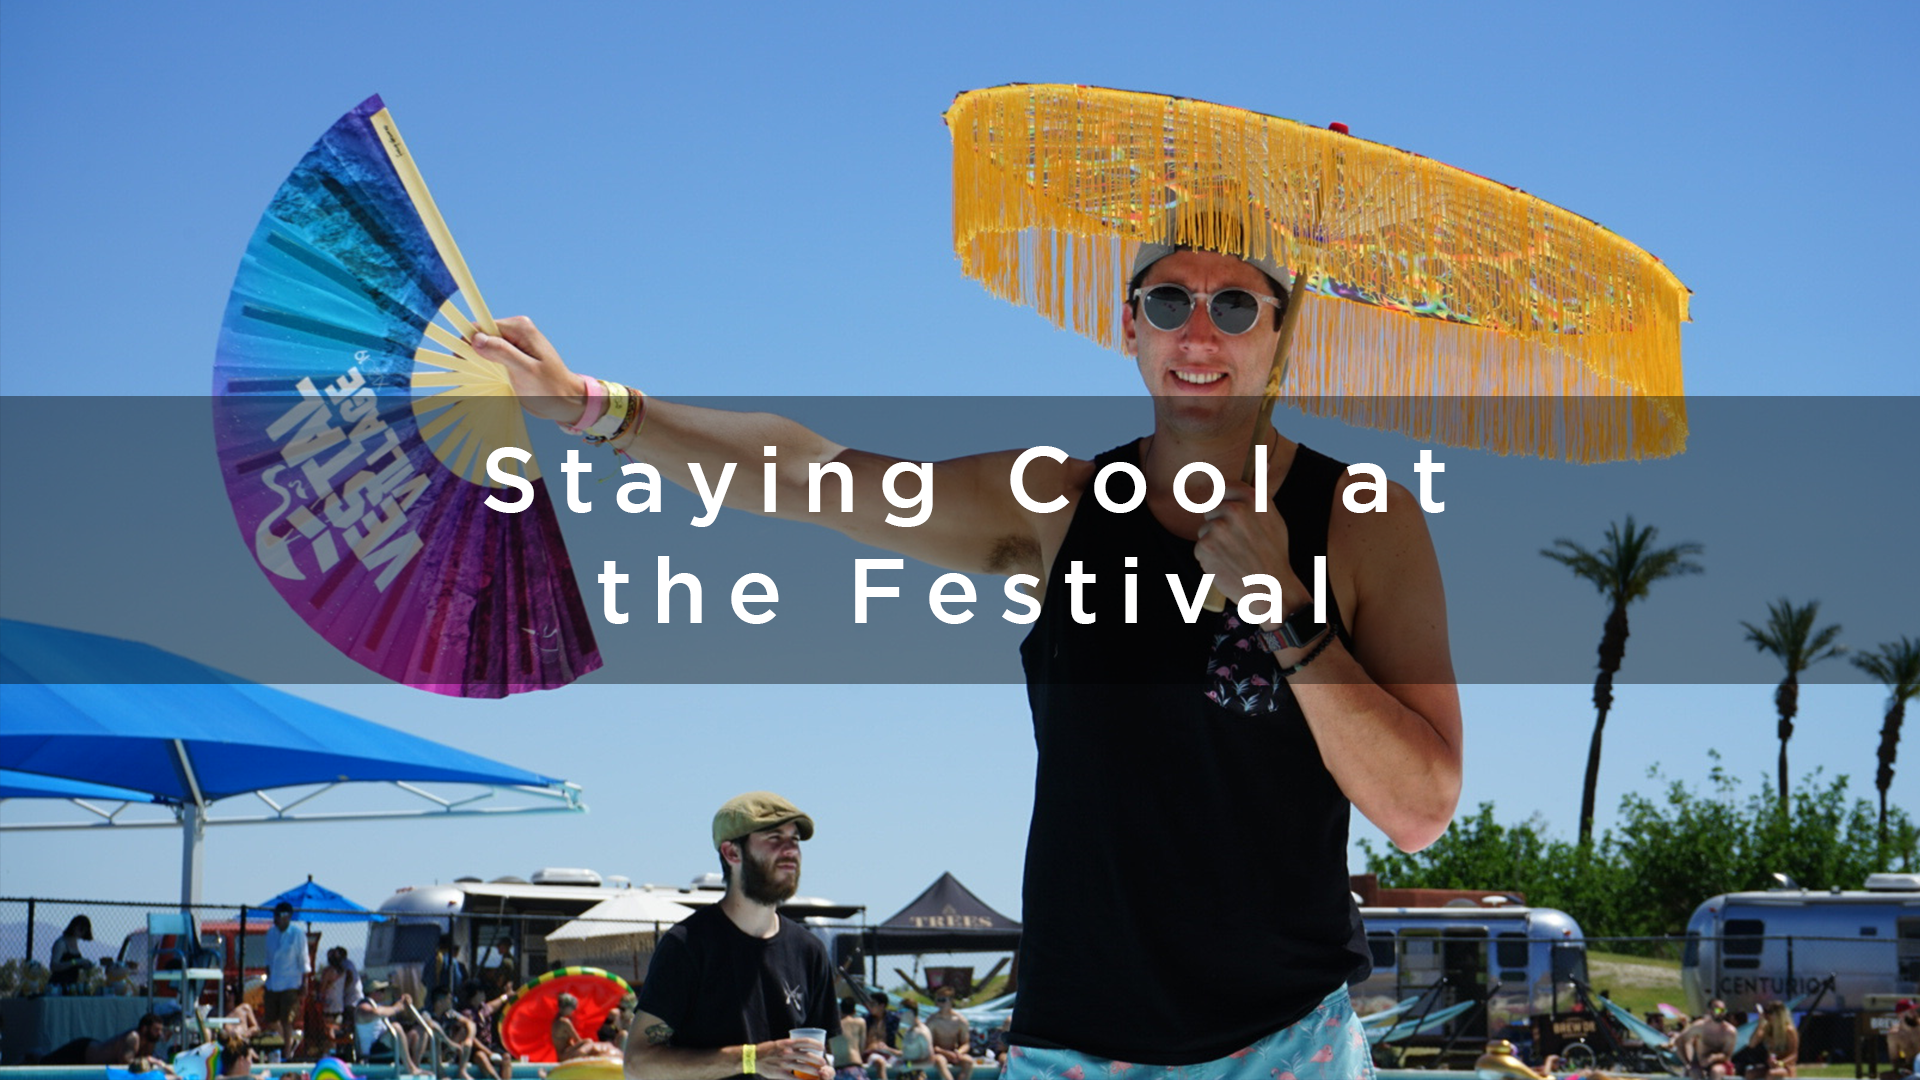 festival fans staying cool at a festival